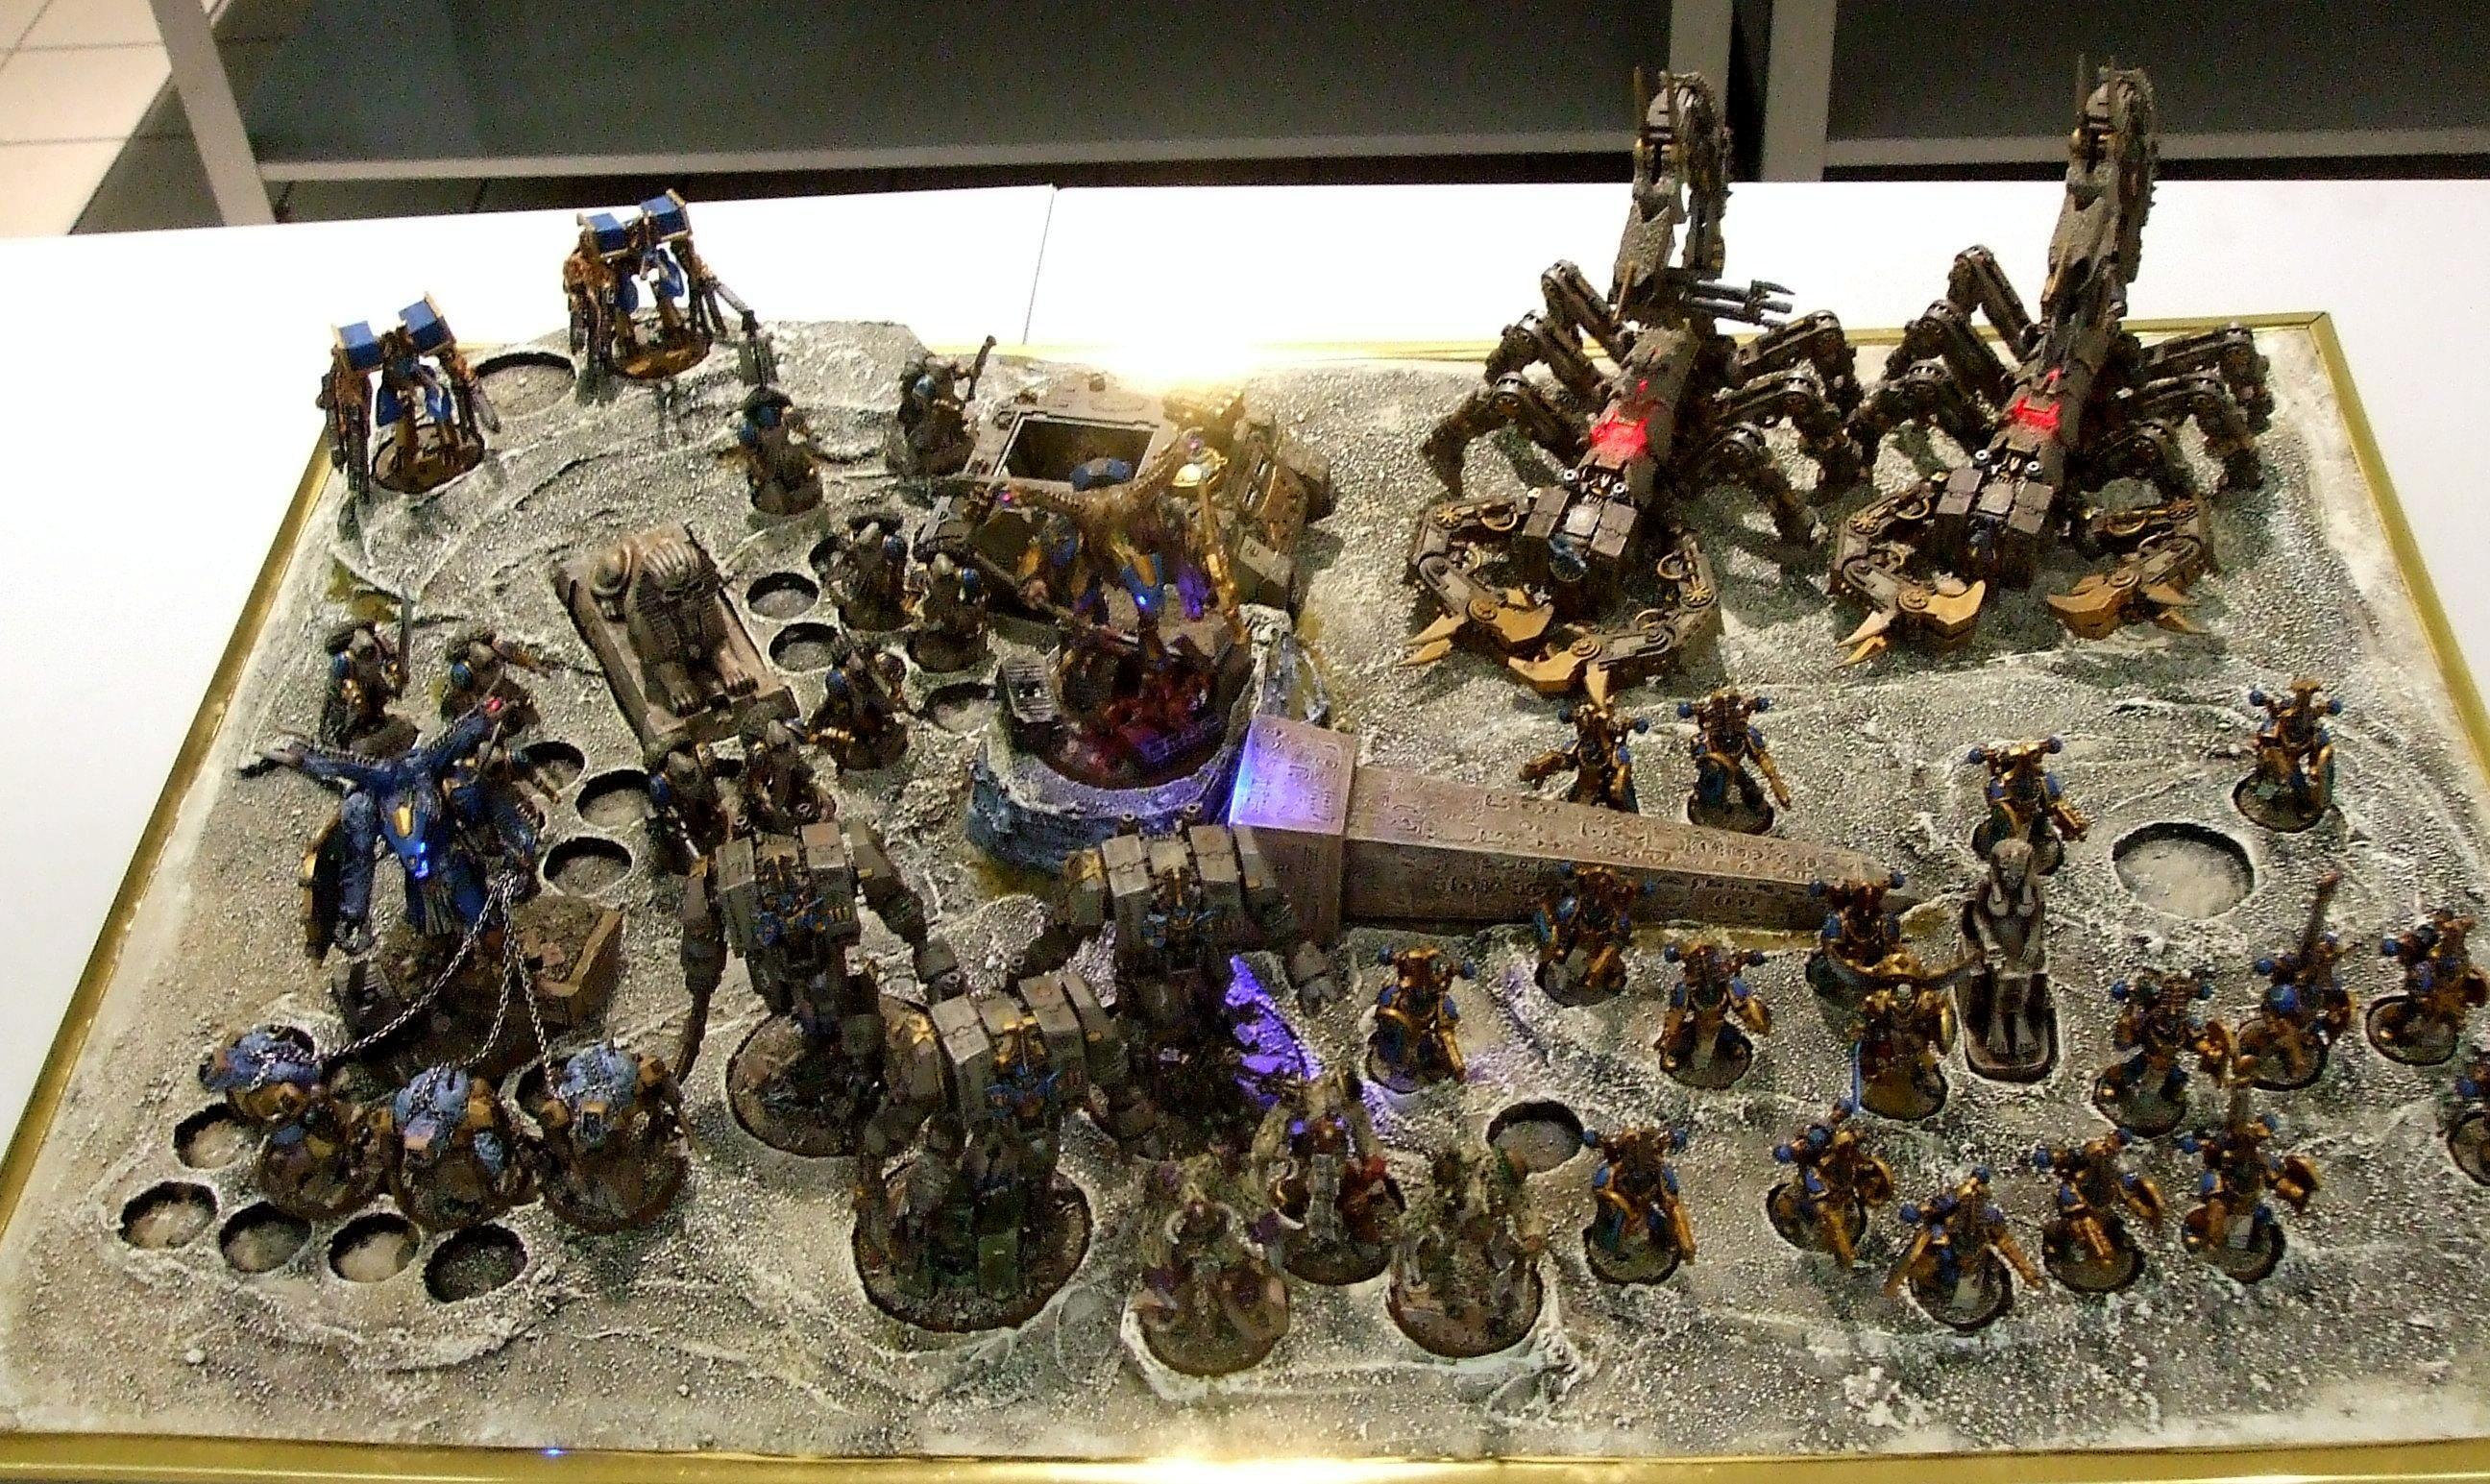 Army, Chaos Space Marines, Grand Tournament, St Valentines Day Massacre, Thousand Sons, Tzeentch